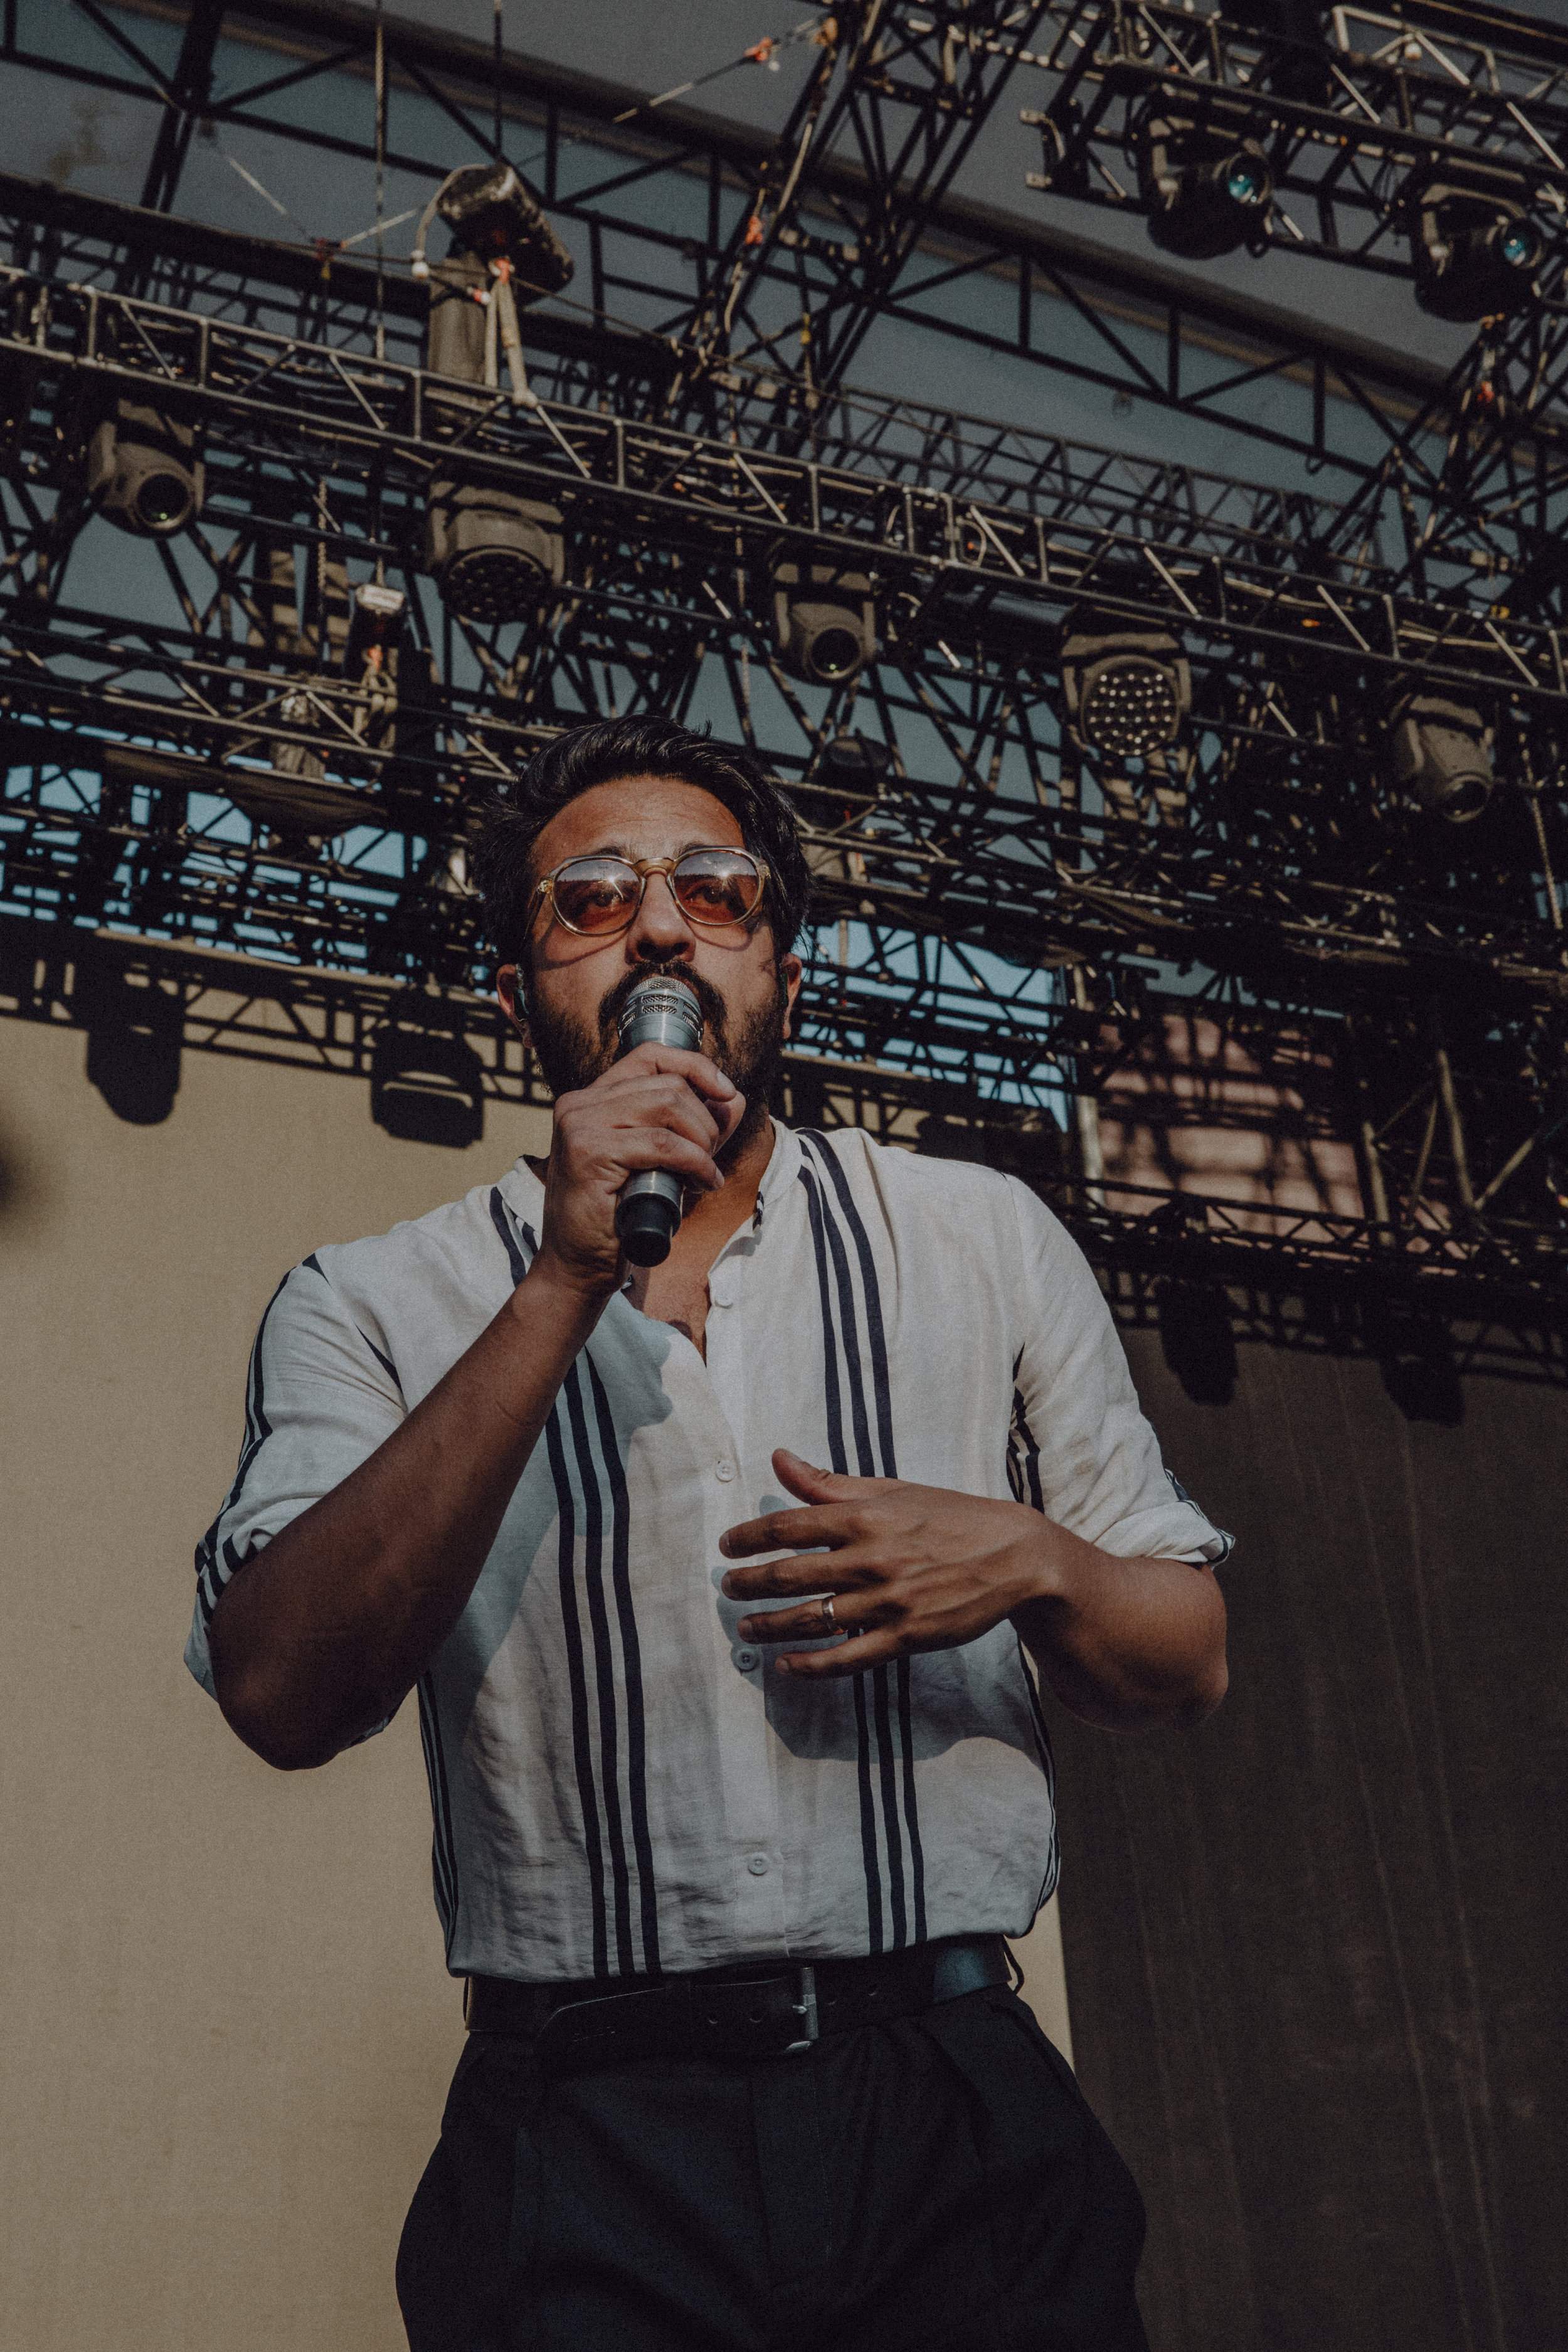 WILLIAMS_YOUNGTHEGIANT-15.jpg